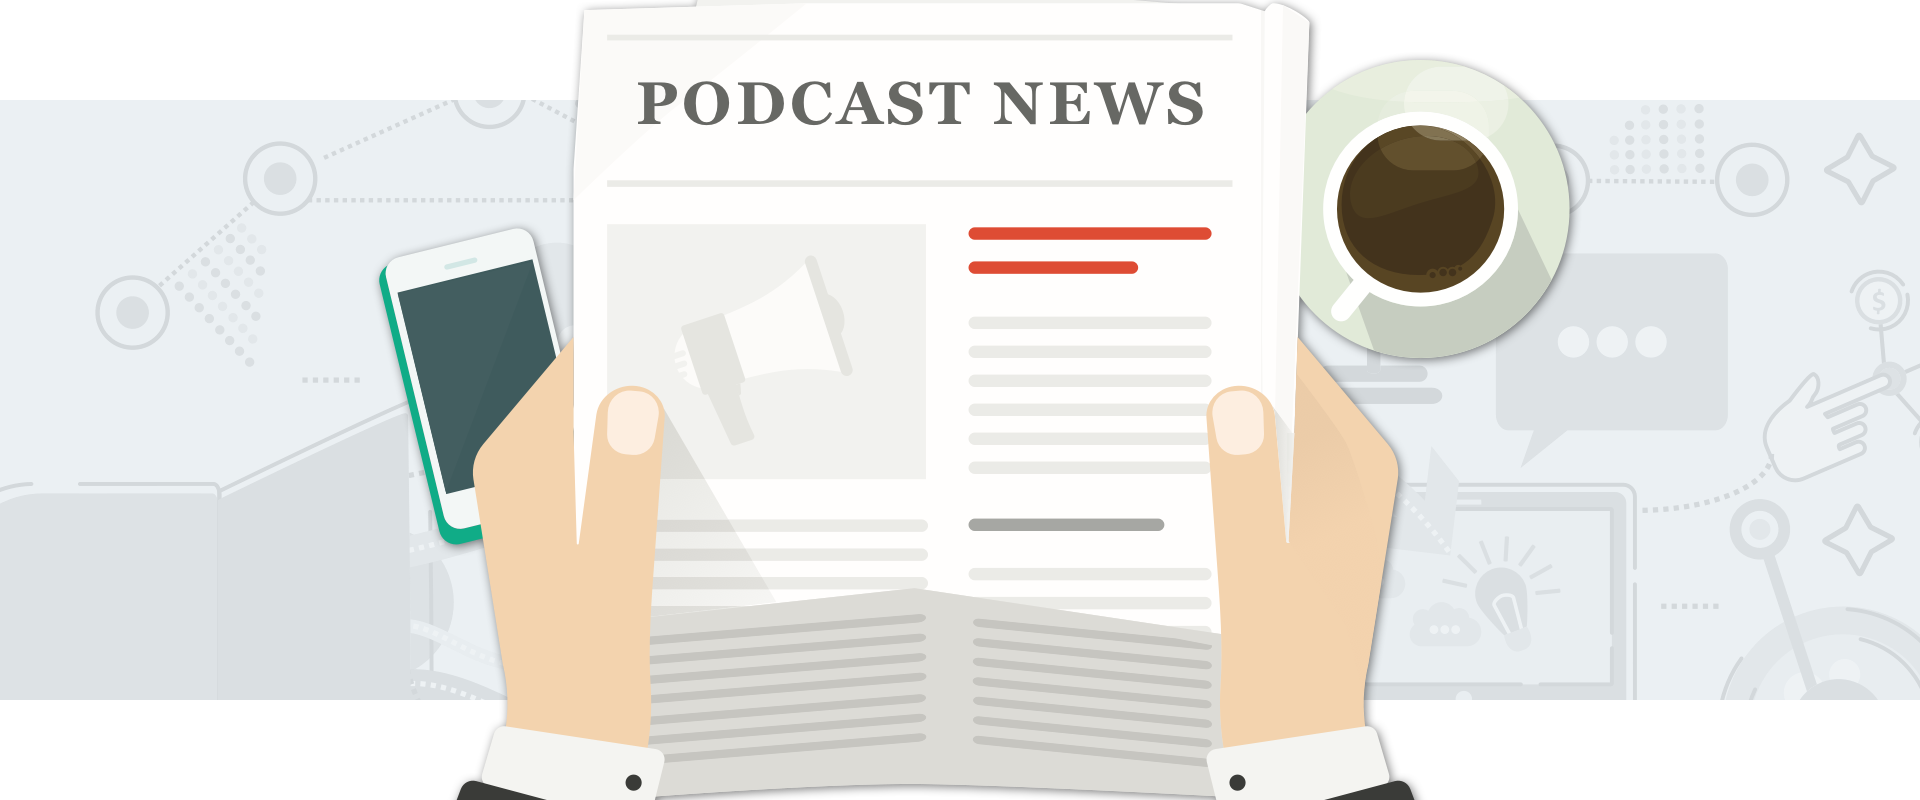 Traditional news interested in podcasting